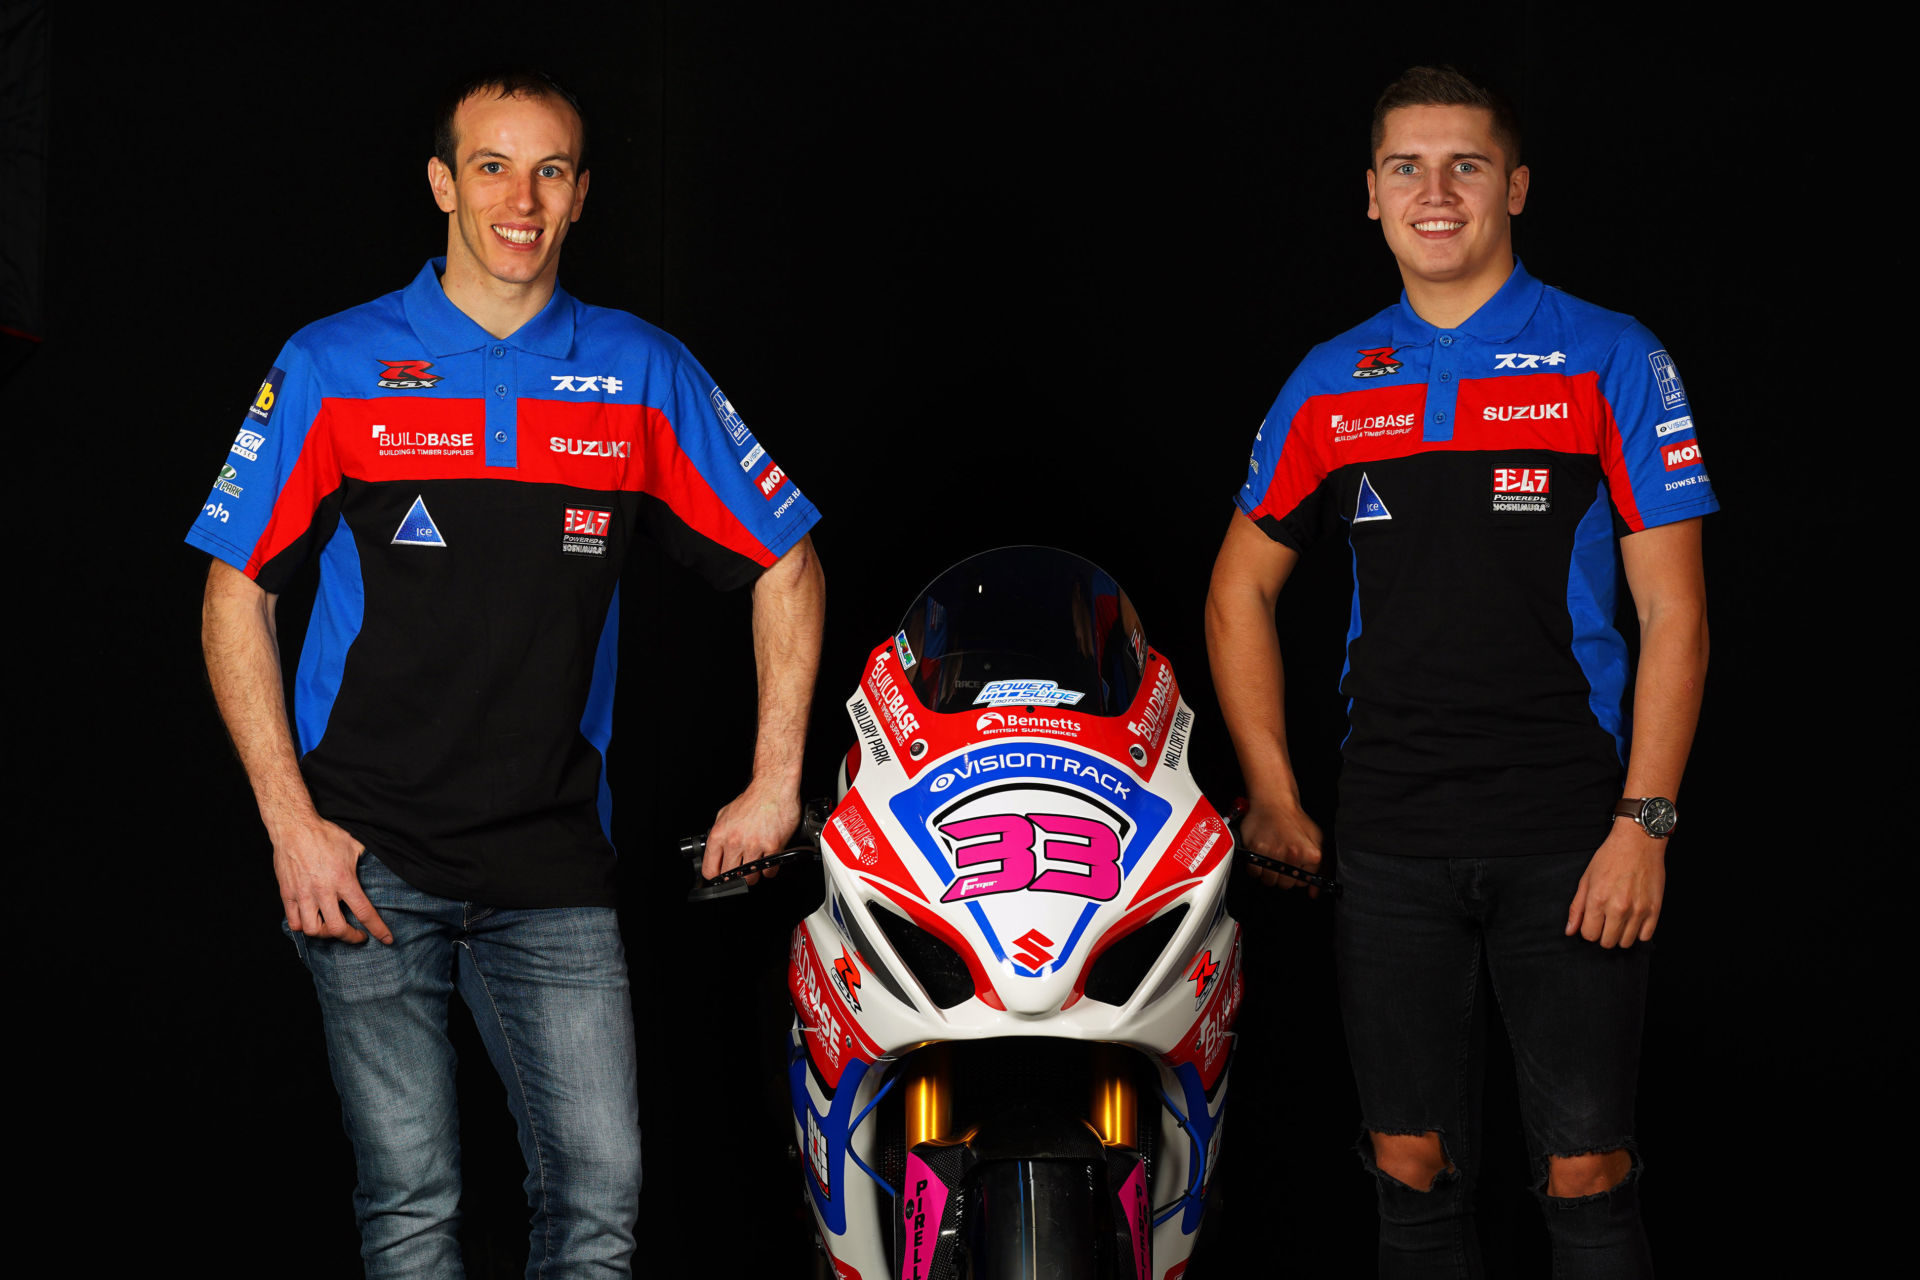 Buildbase Suzuki riders Keith Farmer (left) and Kyle Ryde (right). Photo courtesy of Buildbase Suzuki.